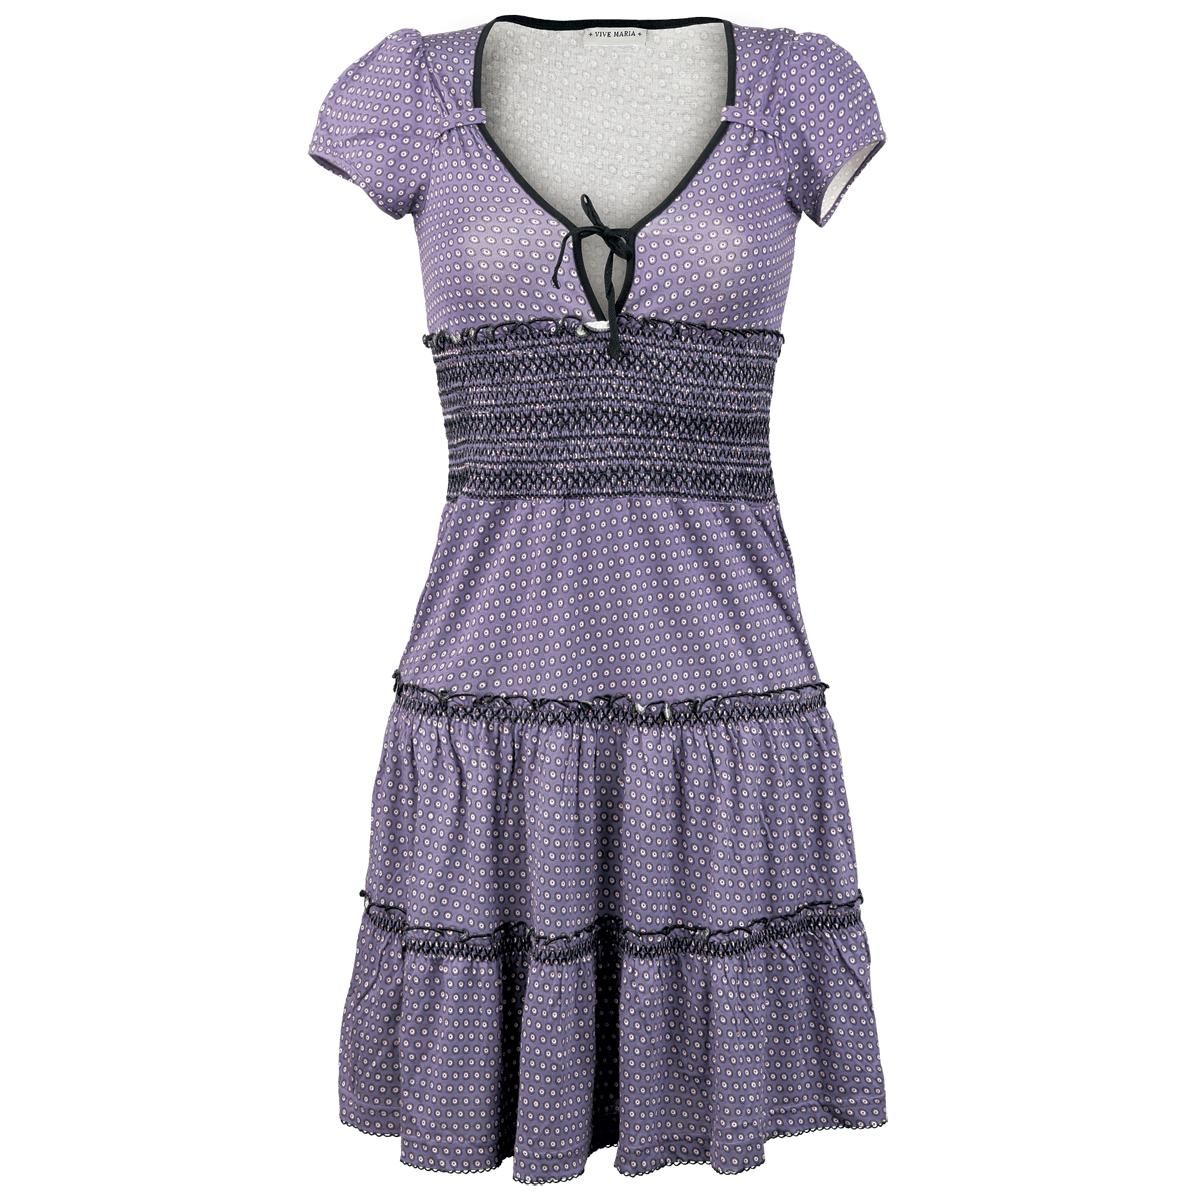 Dress with smocked waist accentuation and accentuated chest. L: approx. 94 cm